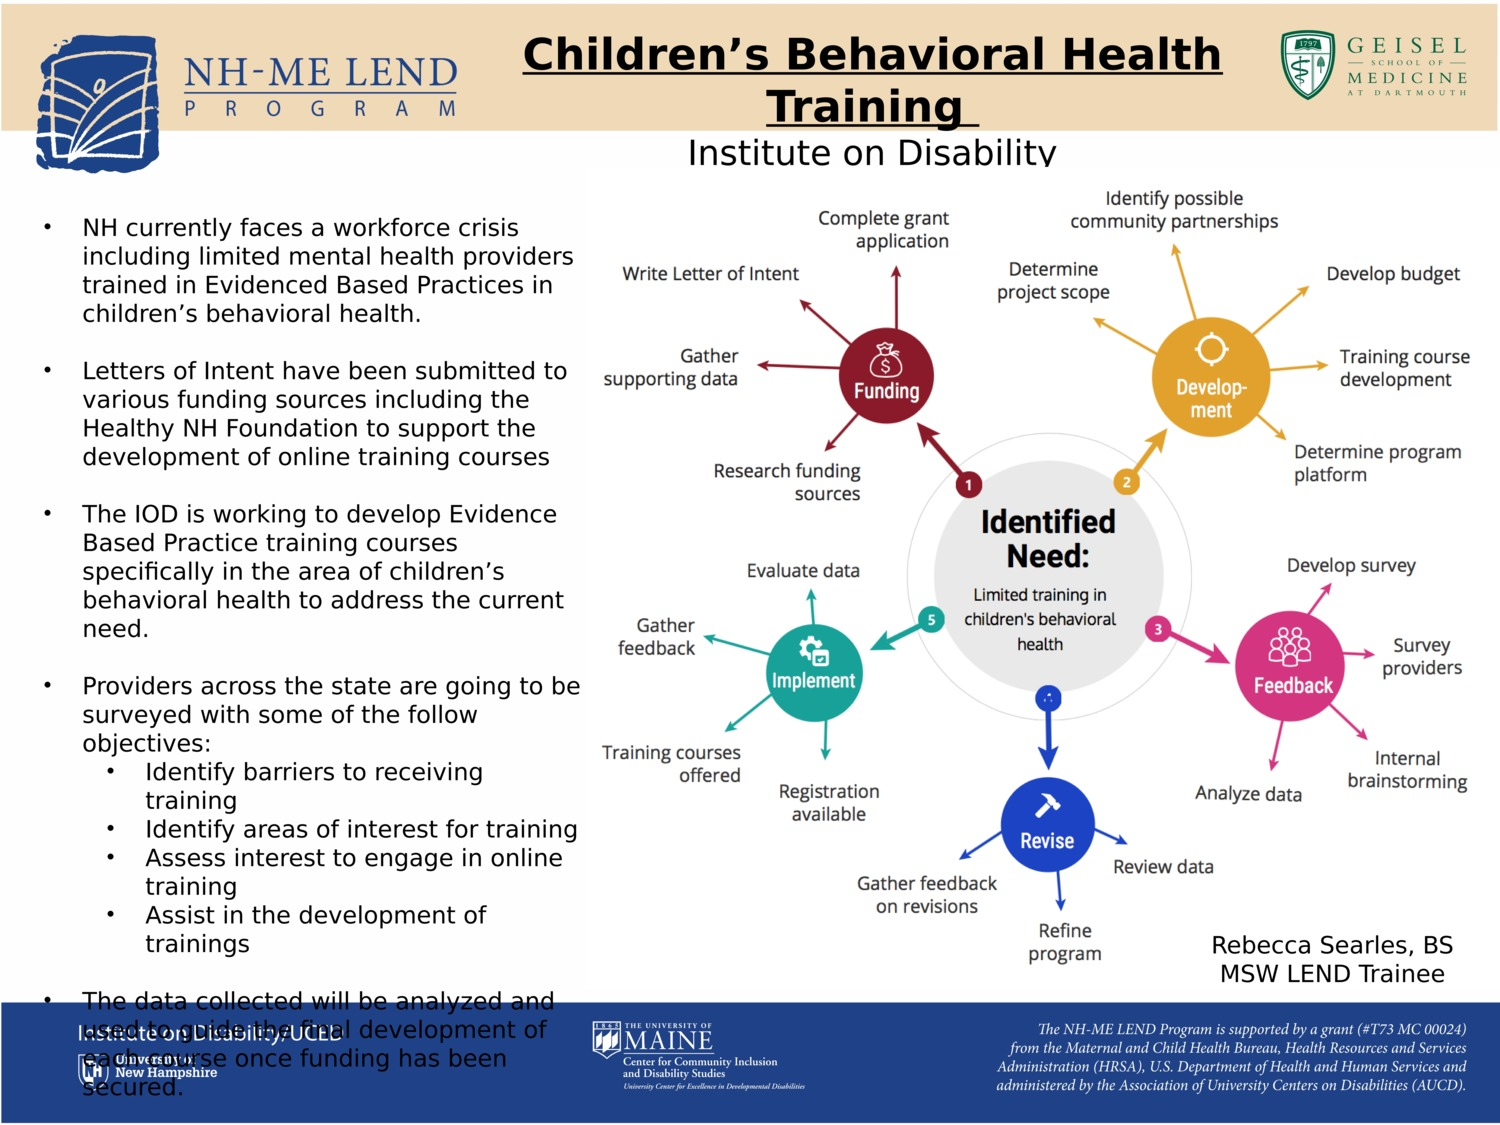 Children's Behavioral Health Training by rlsearles